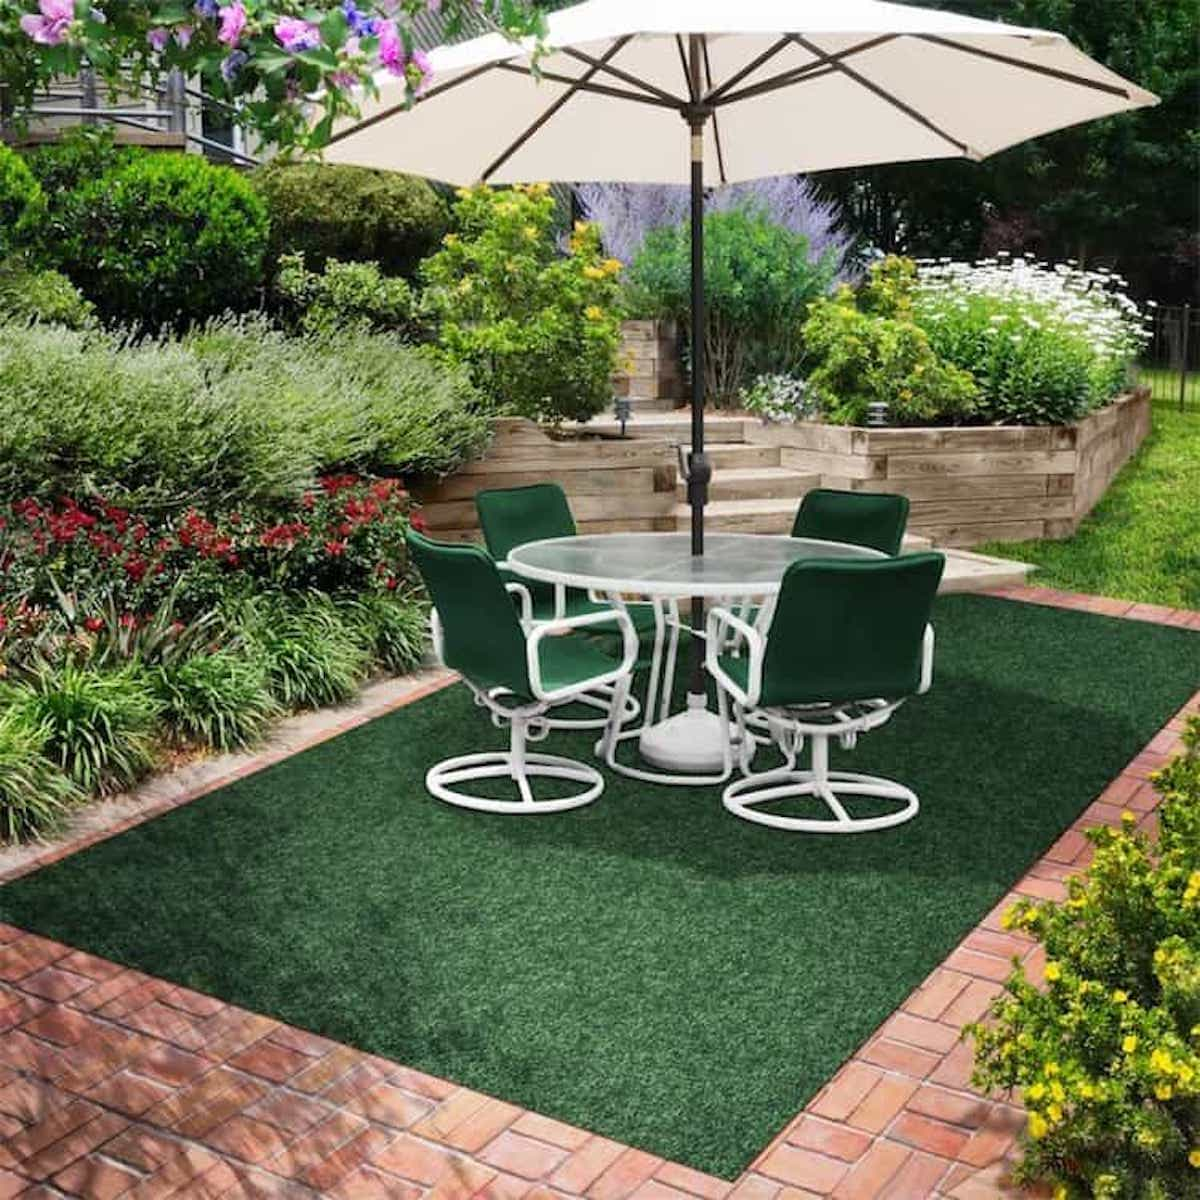 Green Grass Like Outdoor Rugs For Patios (View 8 of 15)